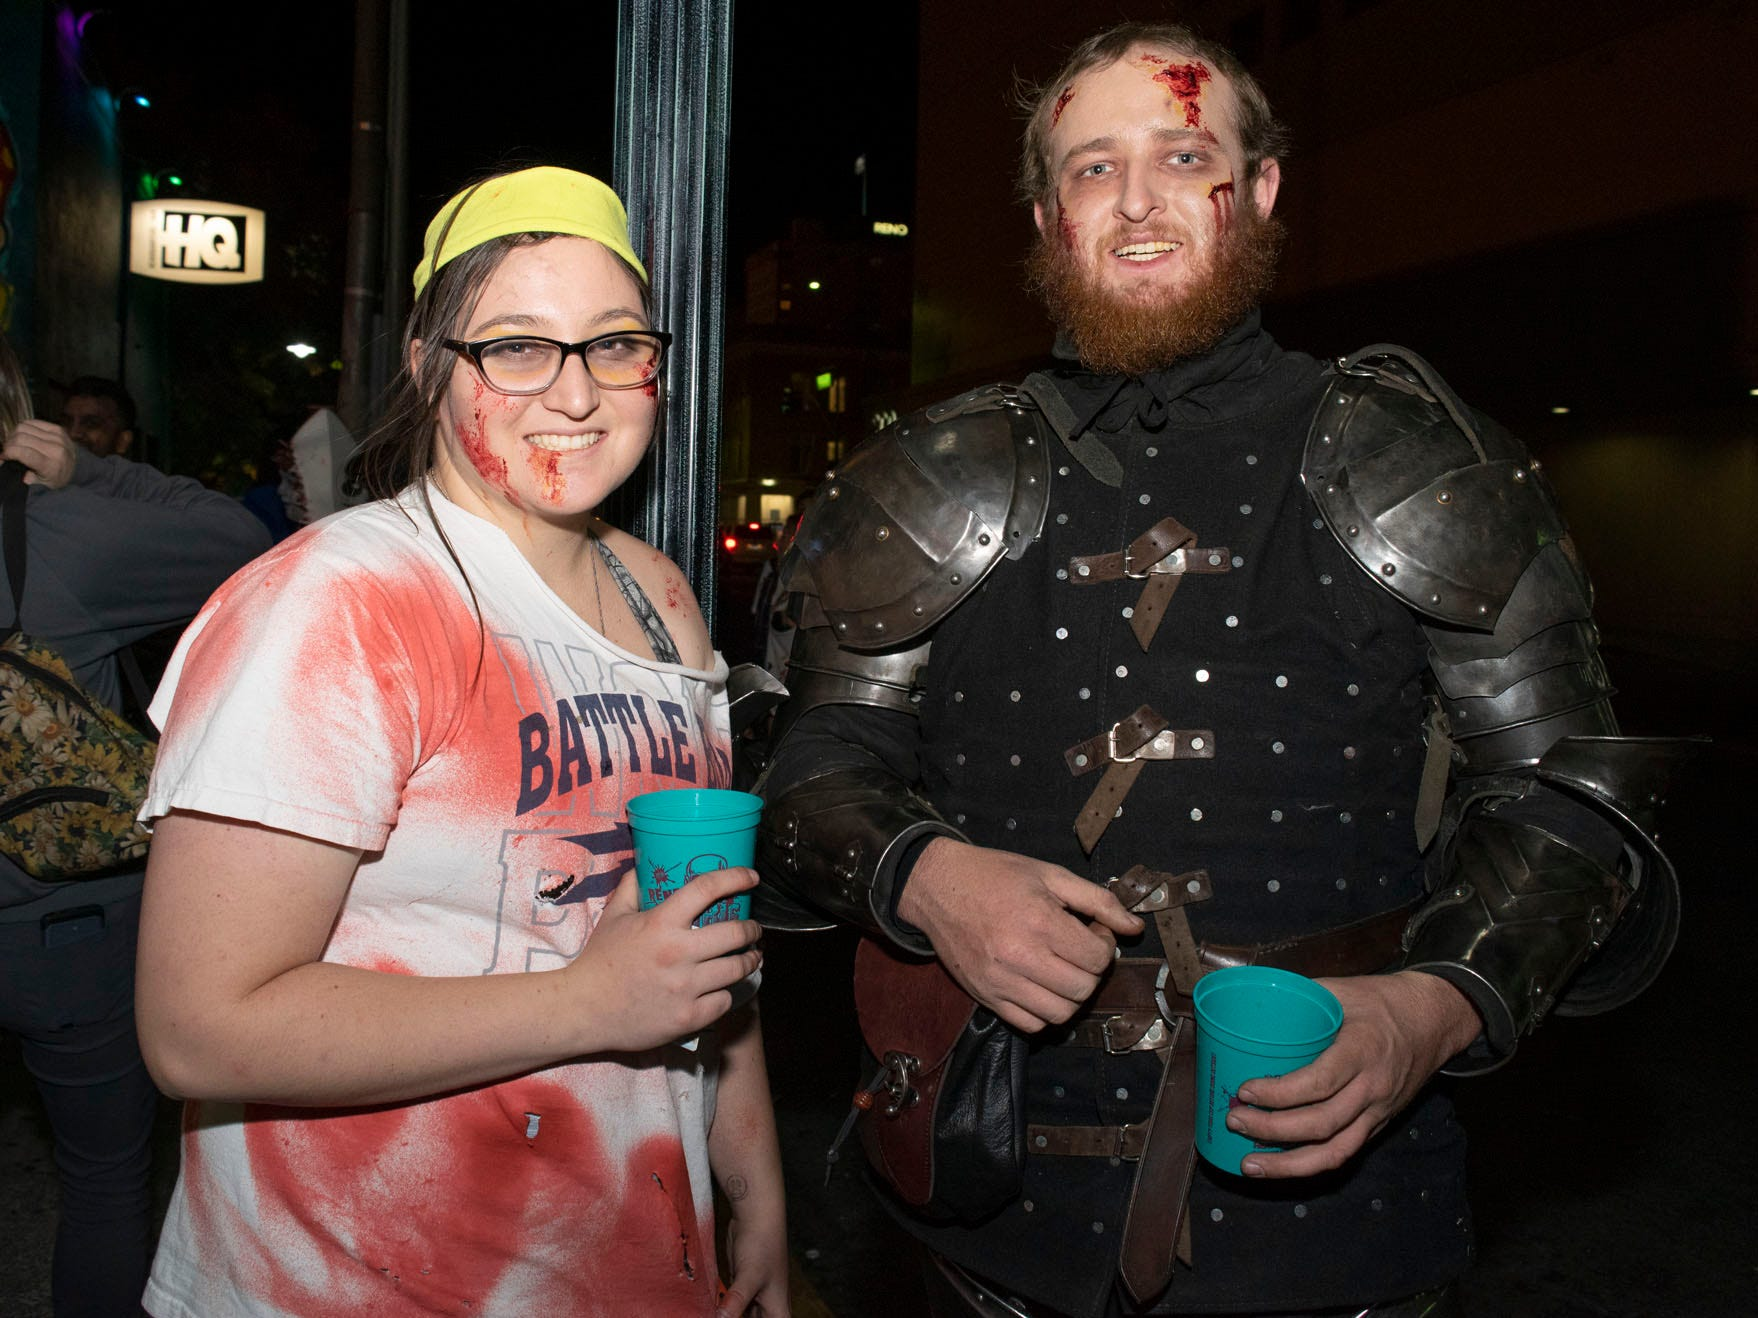 Shannon Myers and Nathaniel Fox attend the Zombie Crawl on Saturday, Oct. 20, 2018. Reno, Nev.